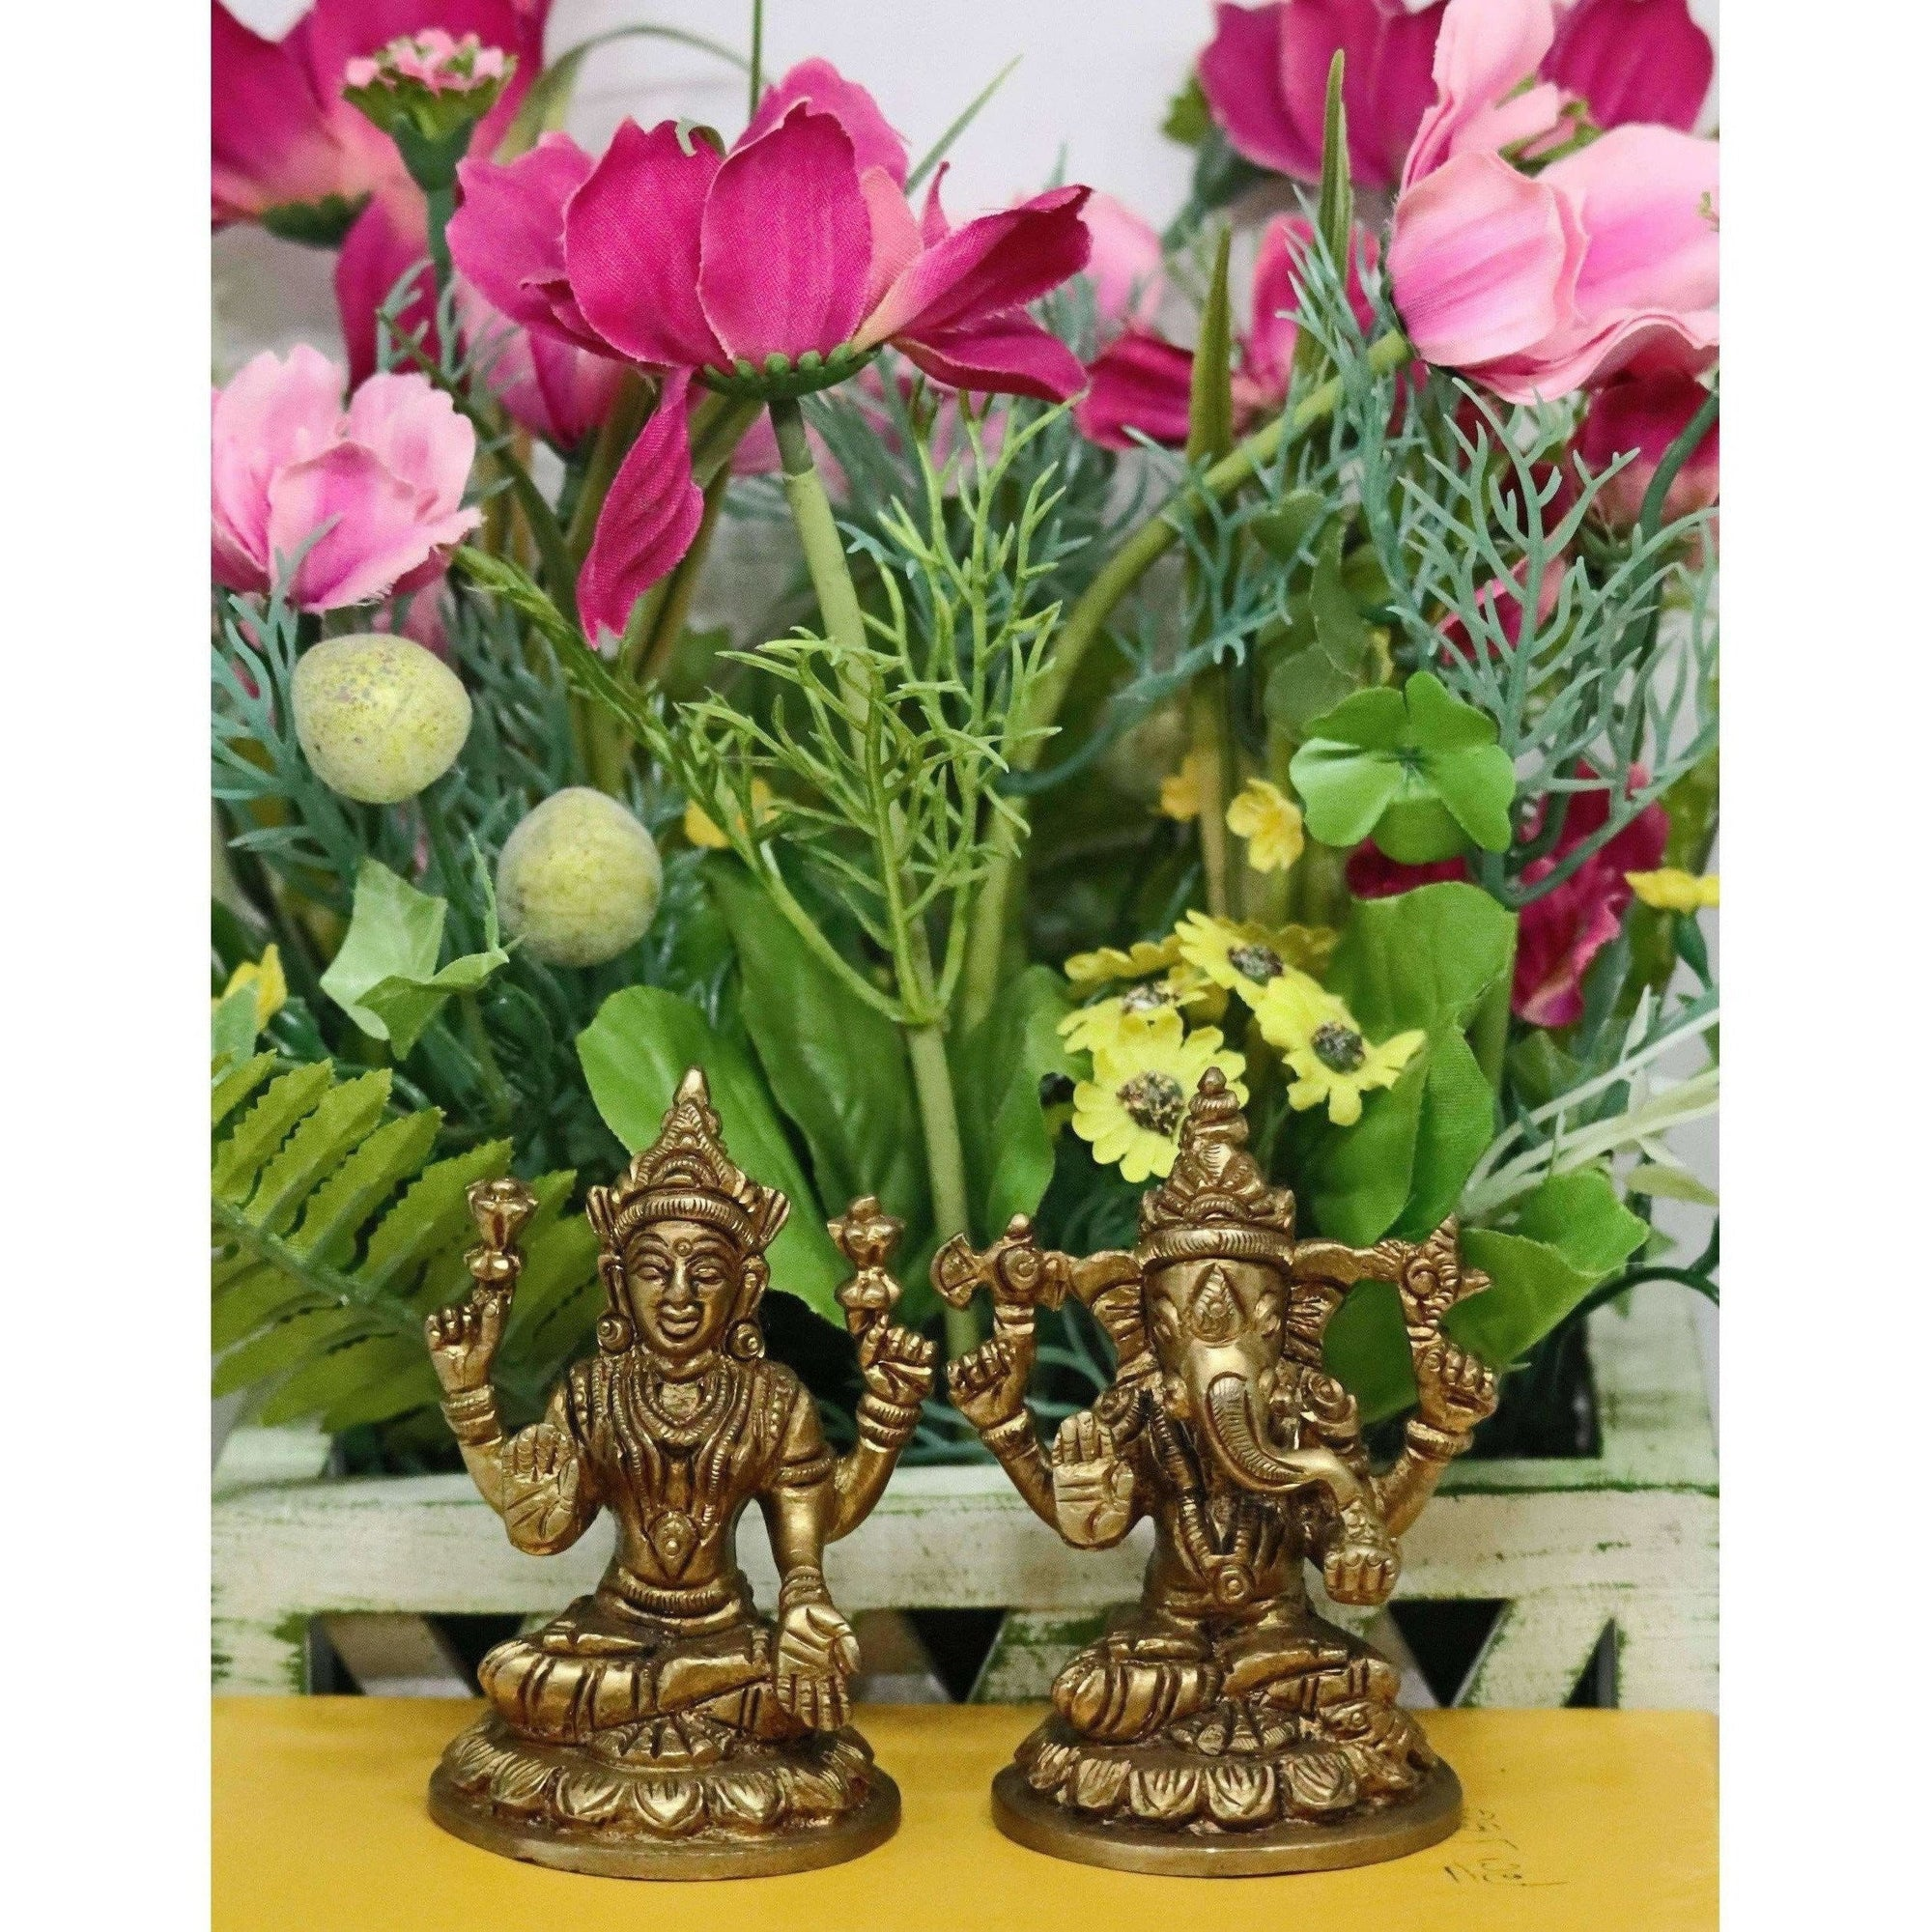 Chahat Premium Living Brass Small Lakshmi Ganesh Set